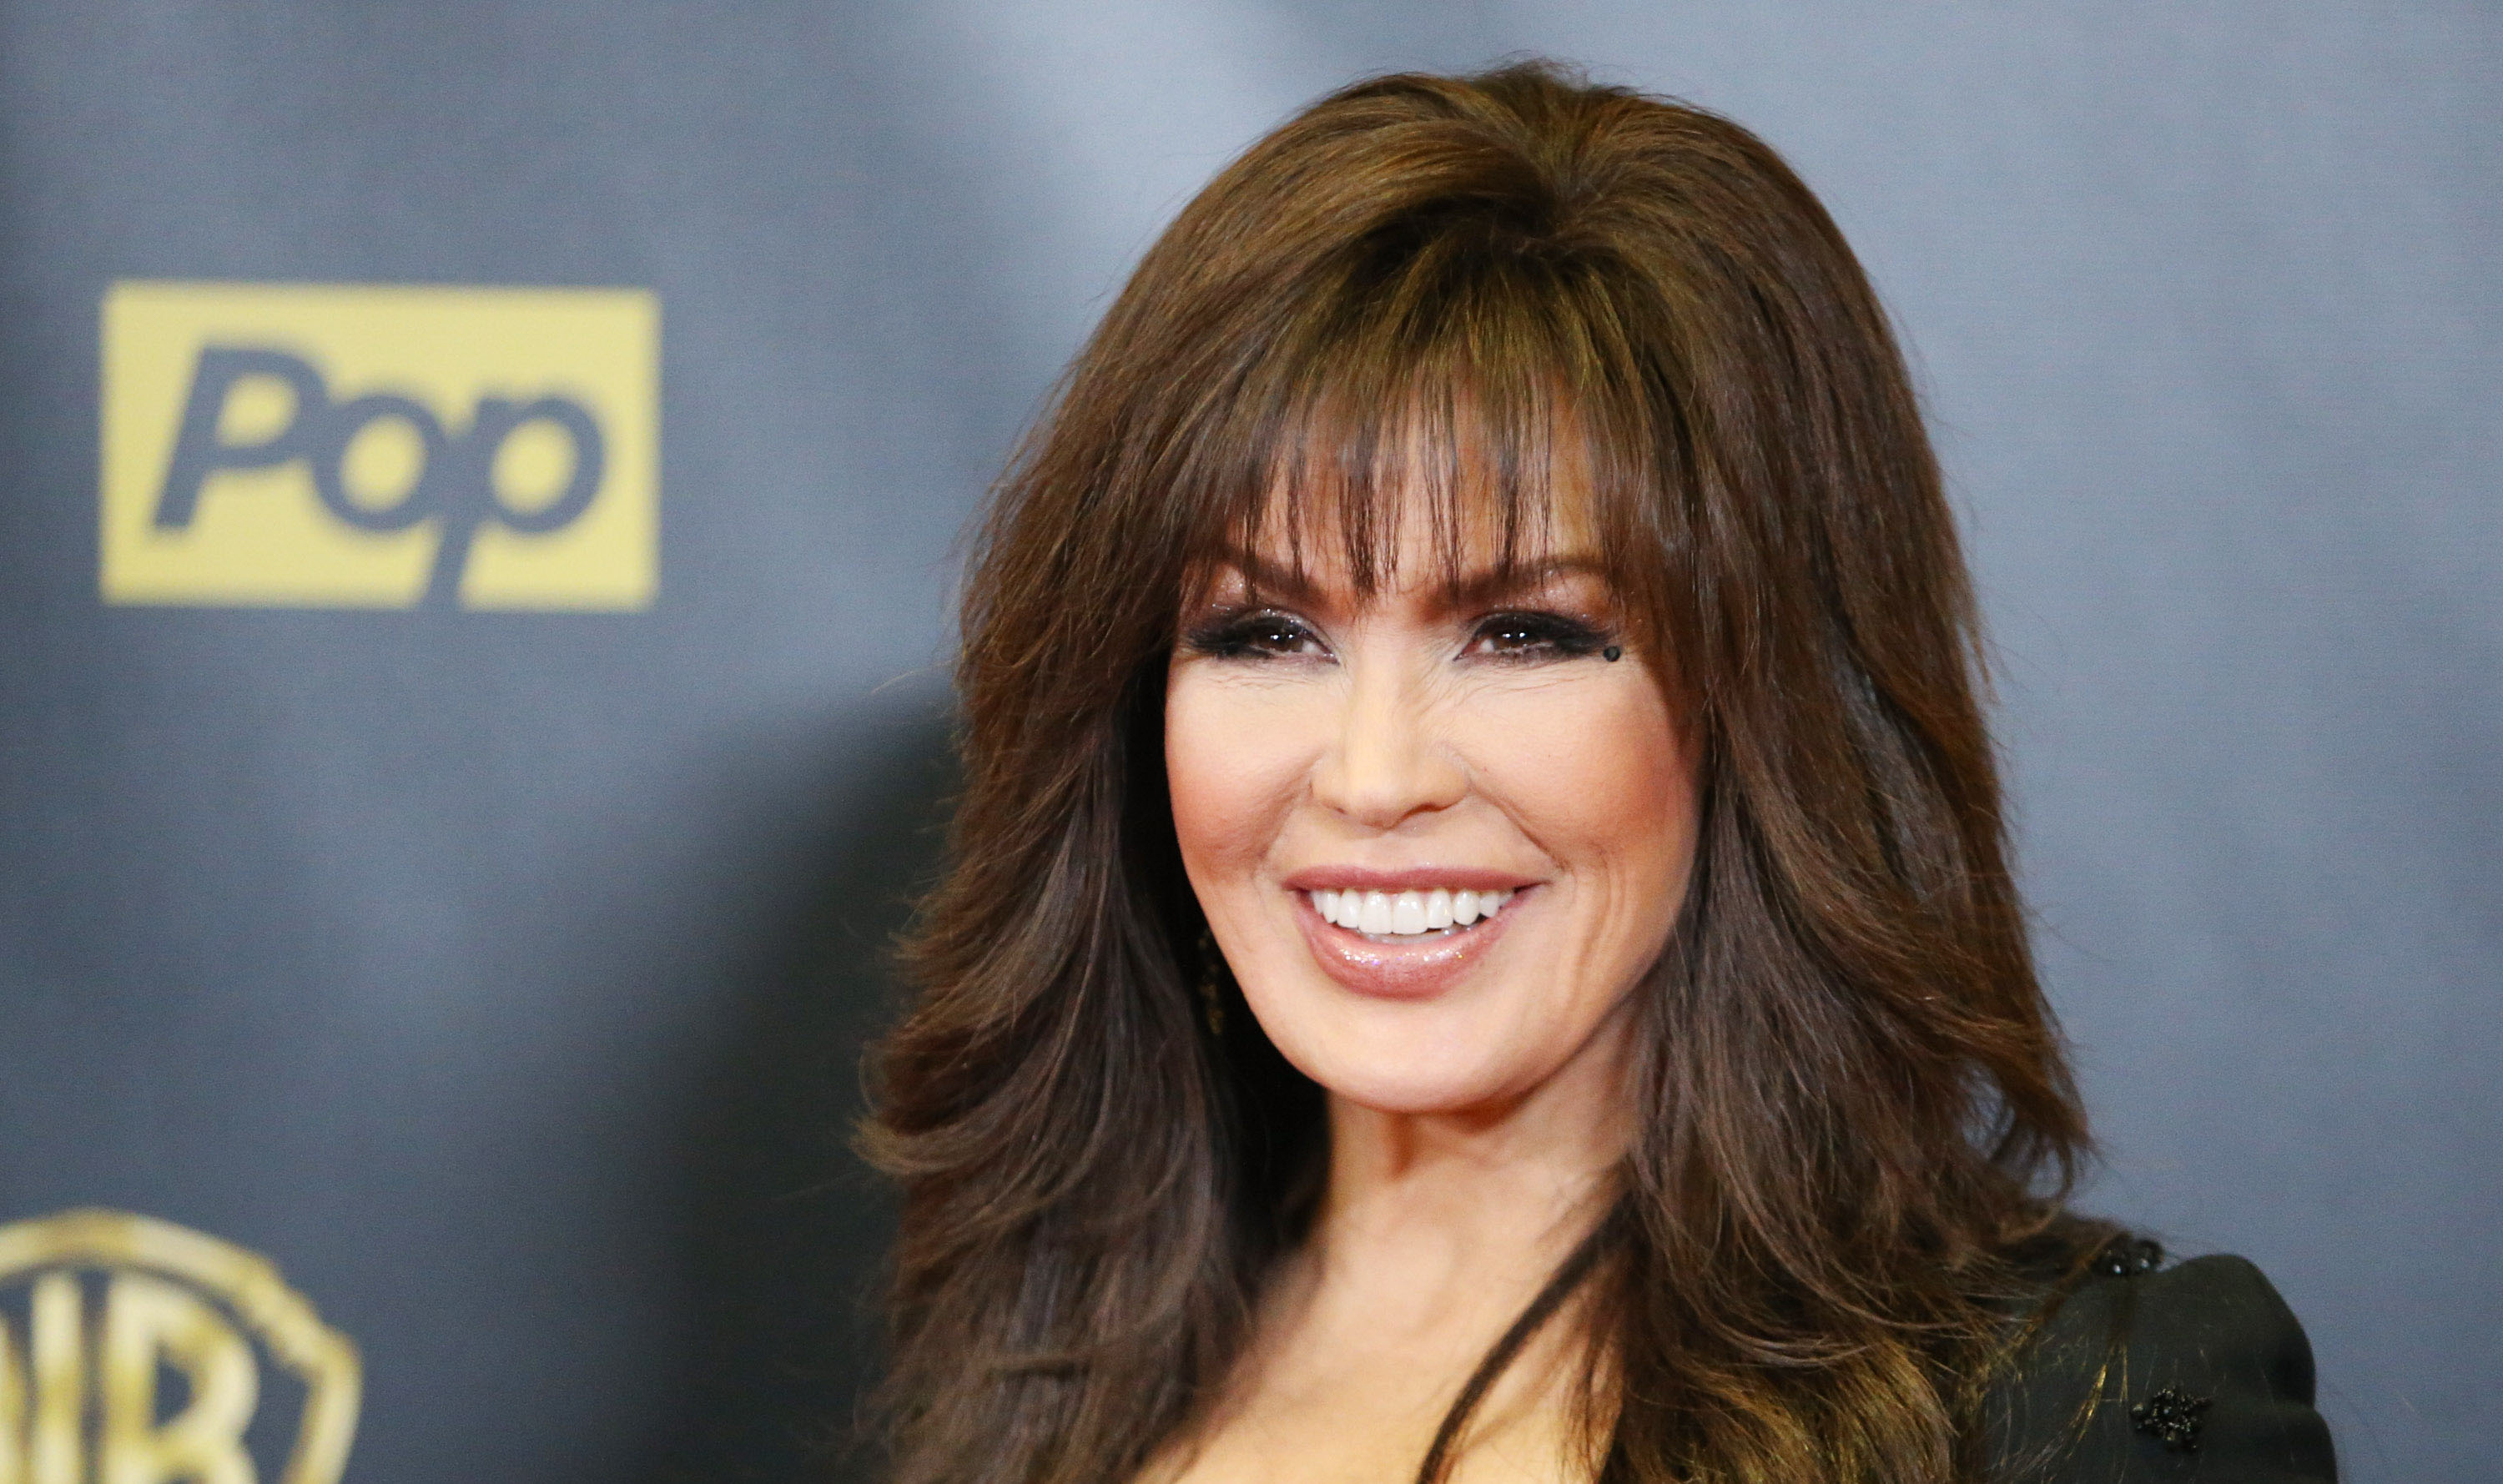 What Will Marie Osmond's Net Worth Be After Joining 'The Talk'?